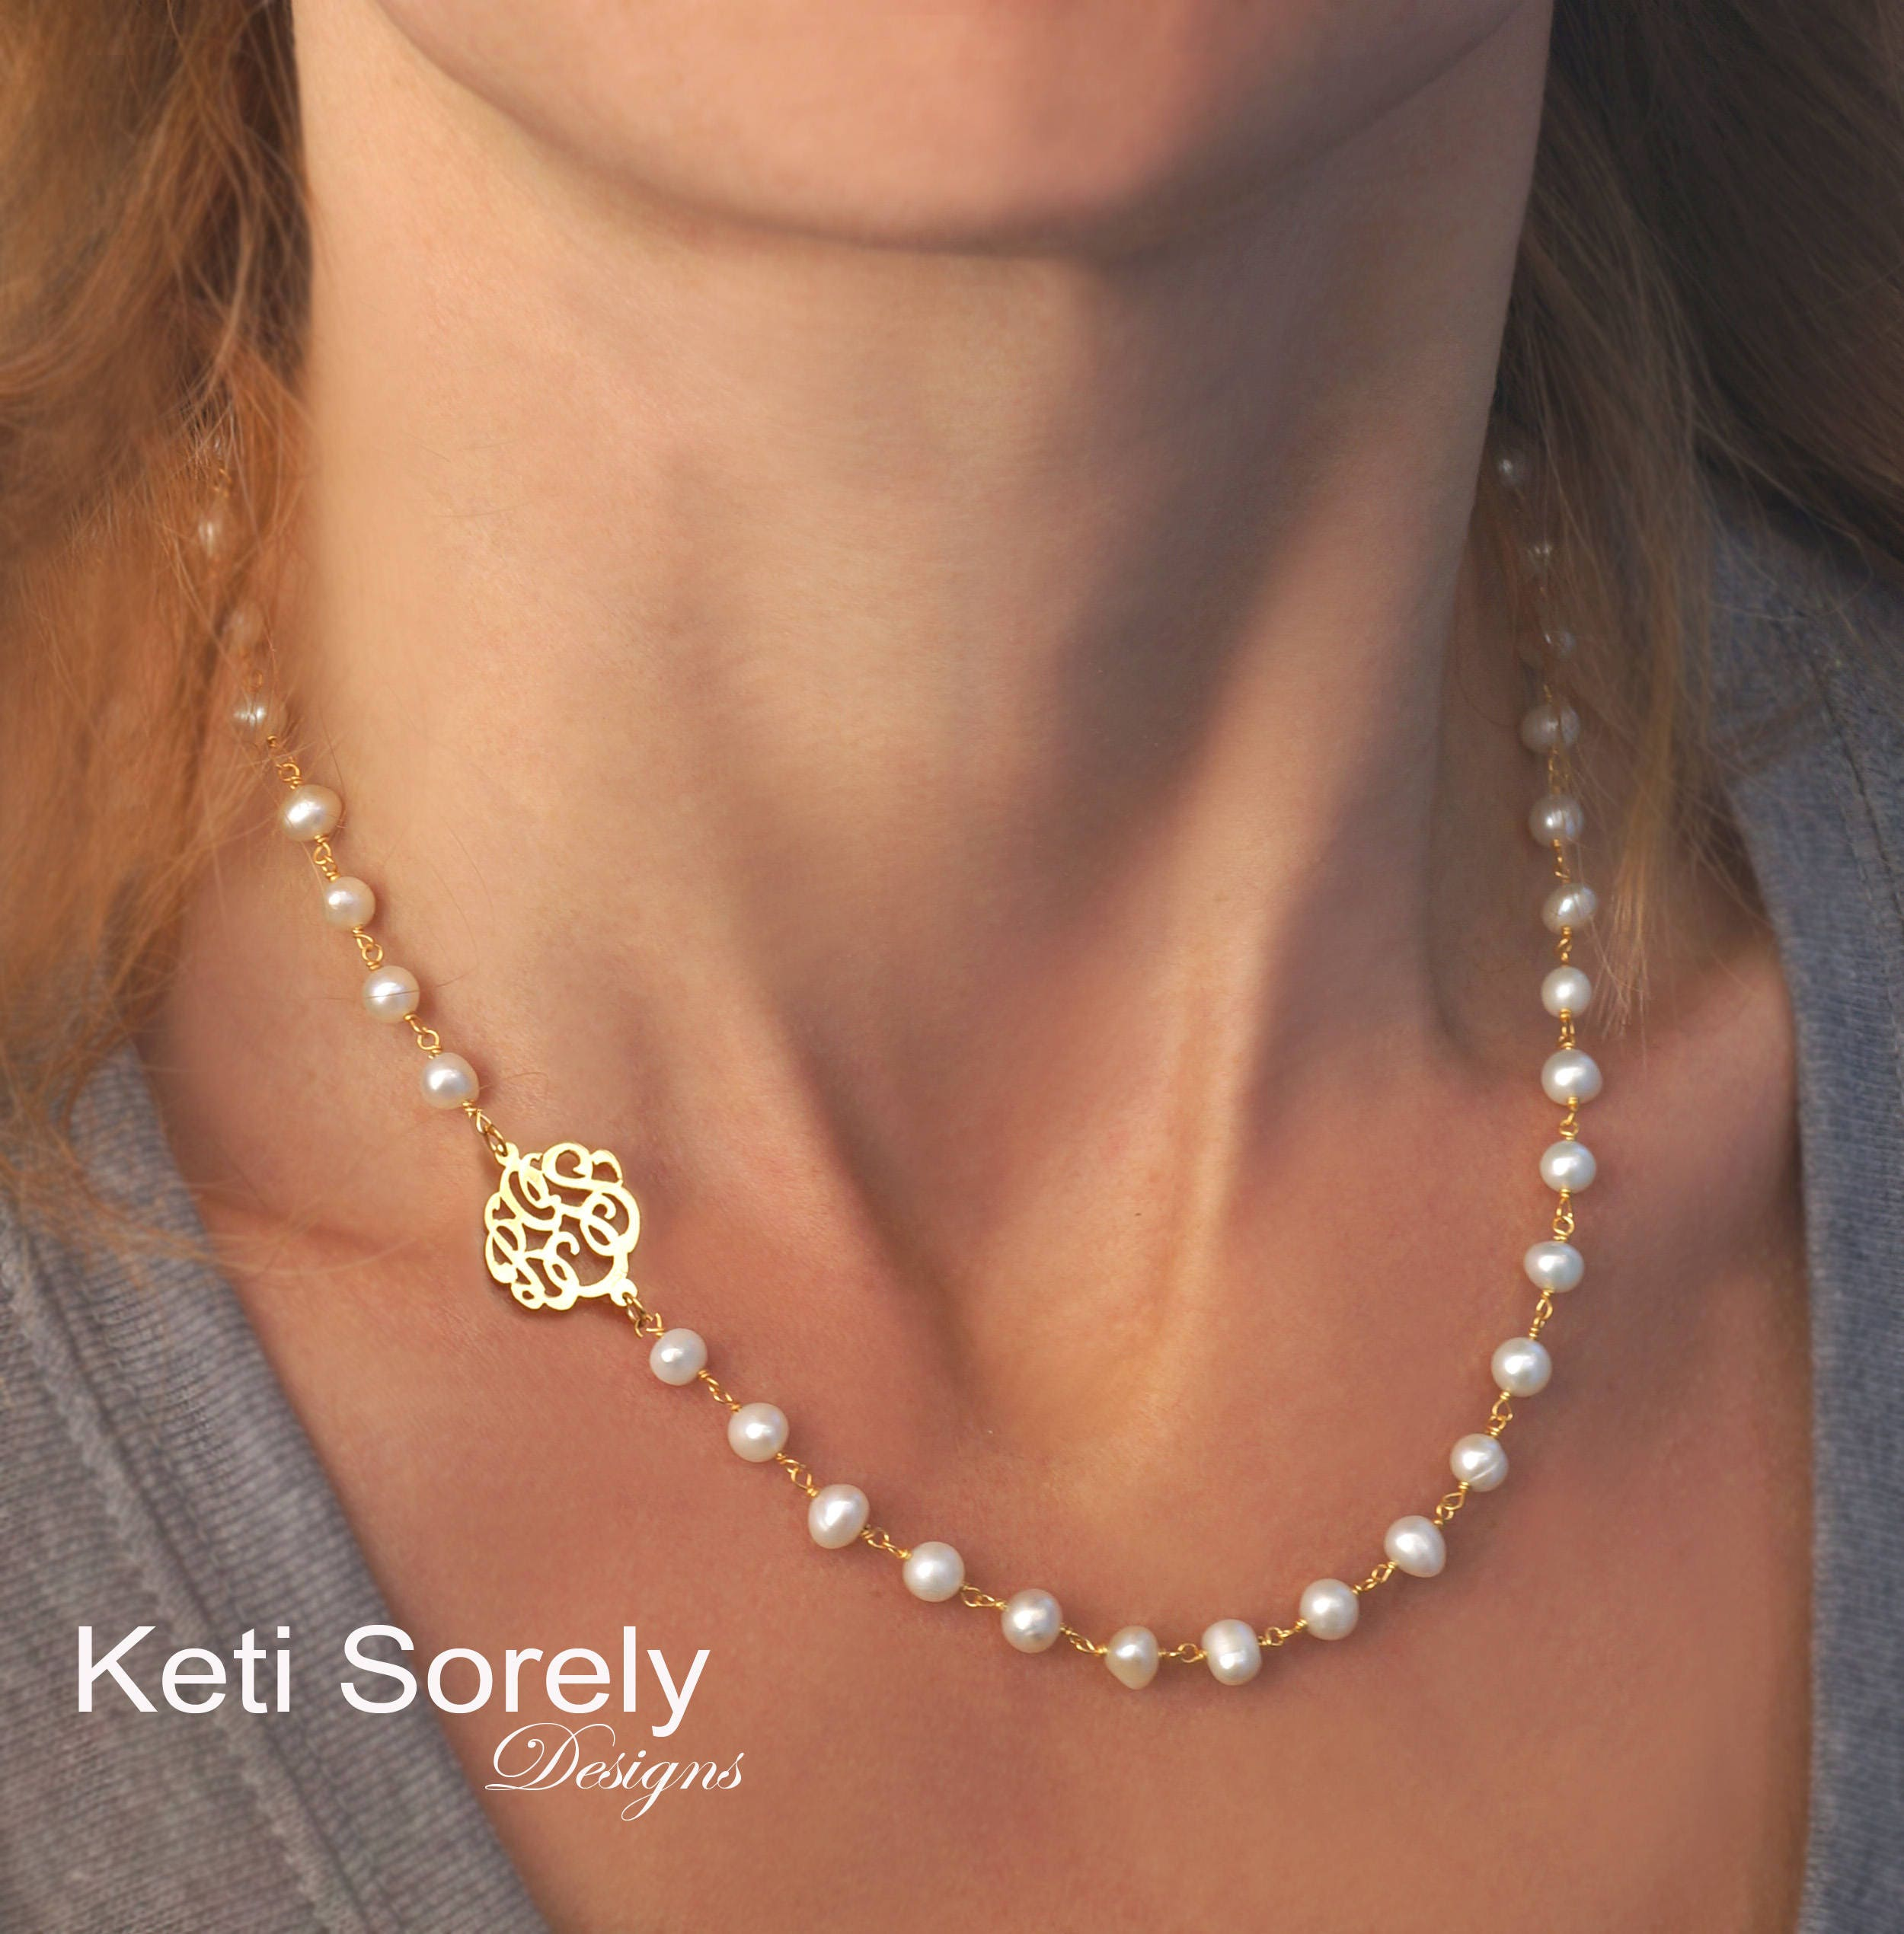 59eb96e441597 Sideways Monogram Initials Charm With Pearl Necklace - Personalized in  Sterling Silver, Yellow Gold or Rose Gold - White Pearls Necklace